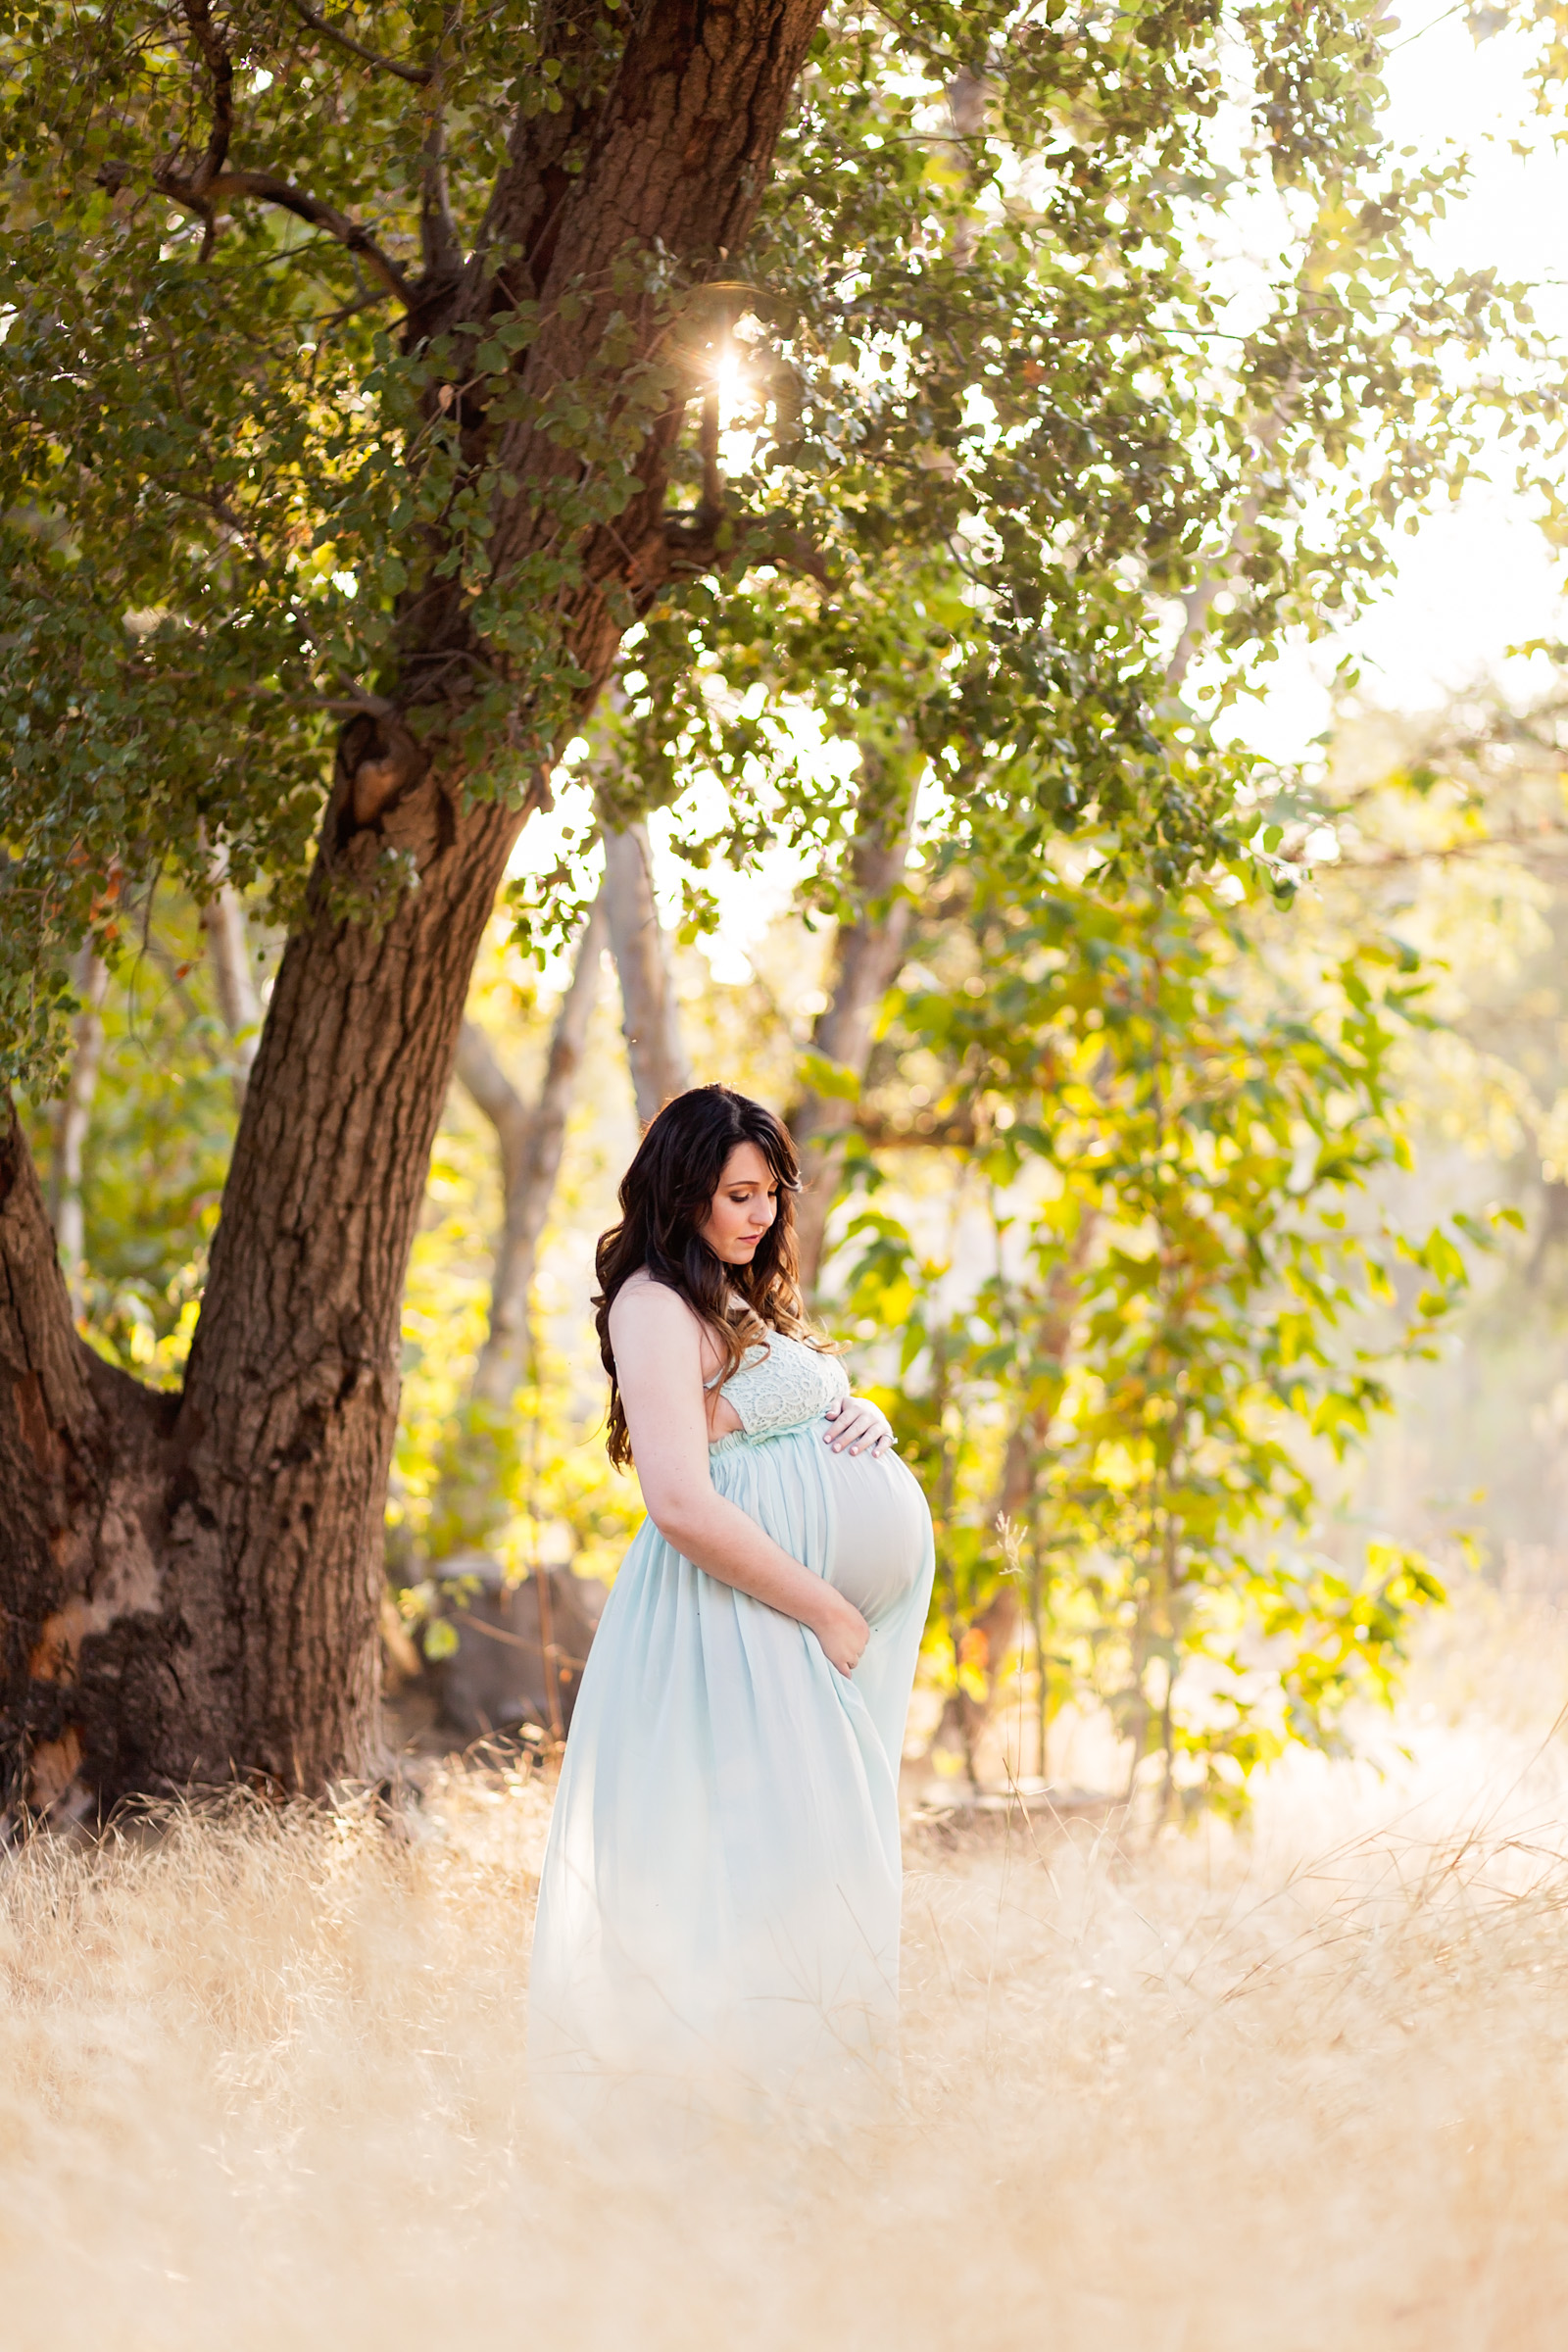 Maternity Portraits by Just Maggie Photography - Los Angeles Maternity Photographer